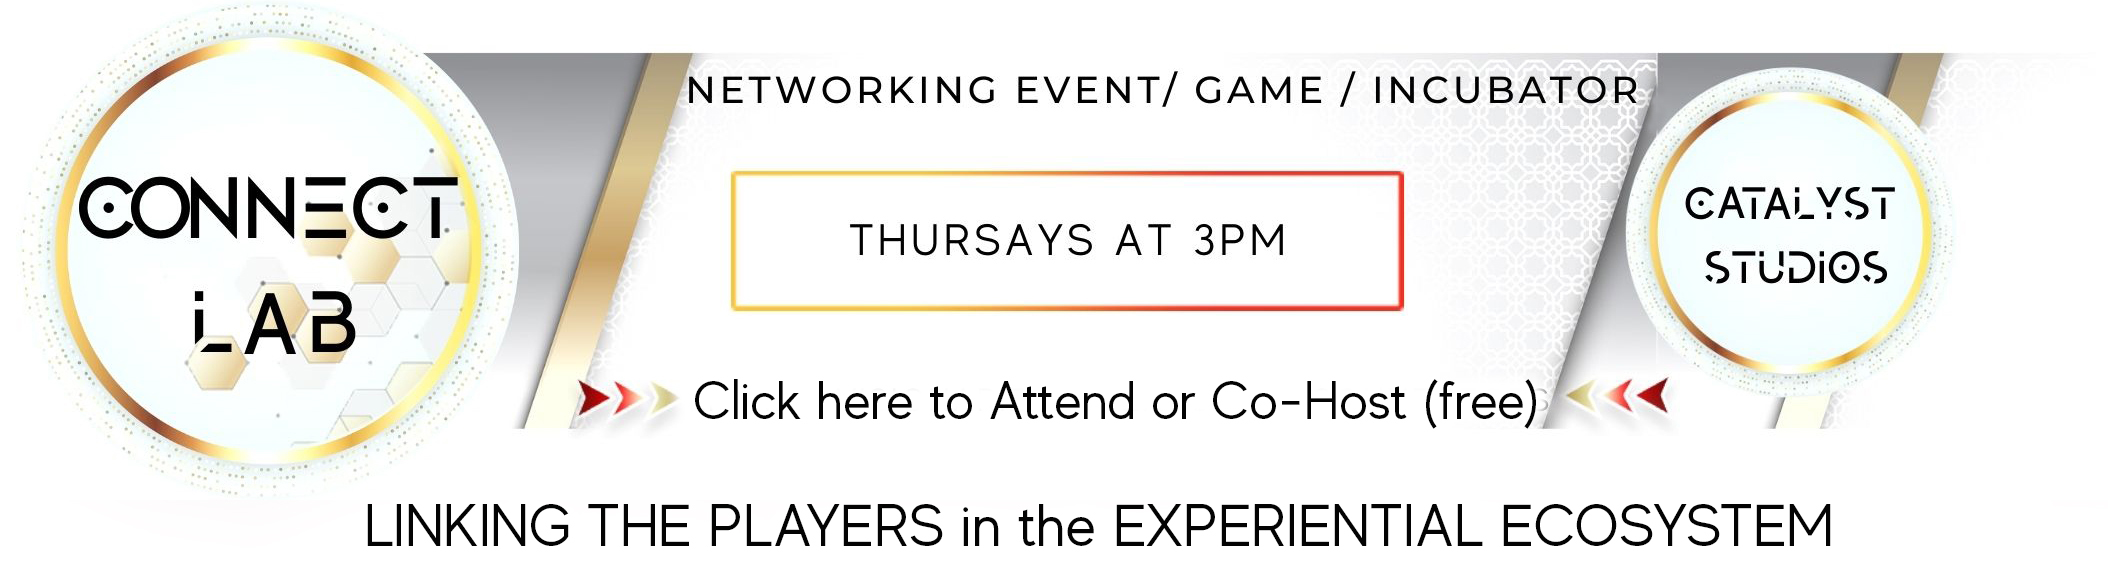 Connect Lab networking roundtable virtual event for experiential professionals